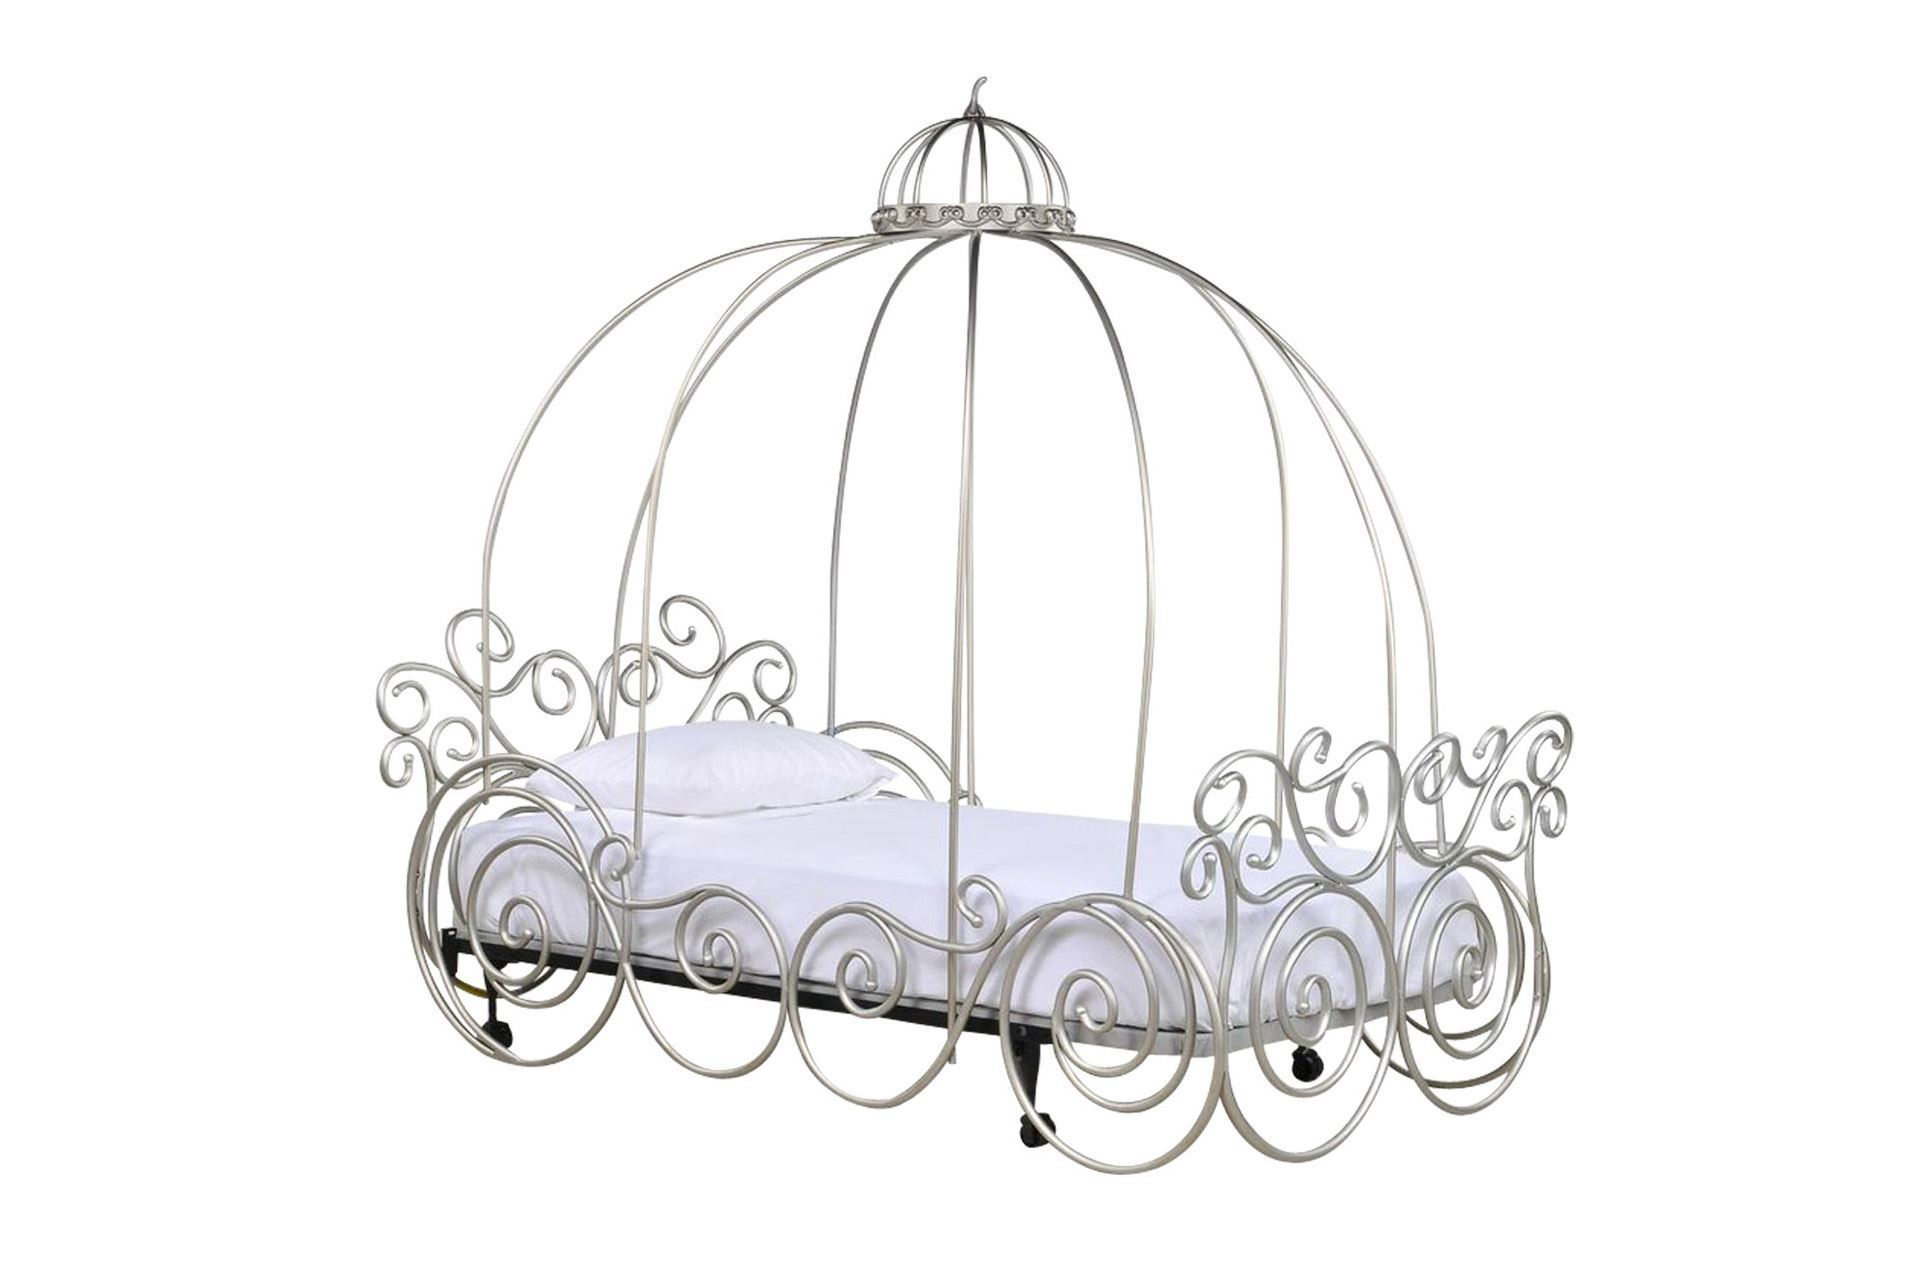 Design Cinderella Carriage Bed disney princess carriage bed lookup beforebuying twin bed